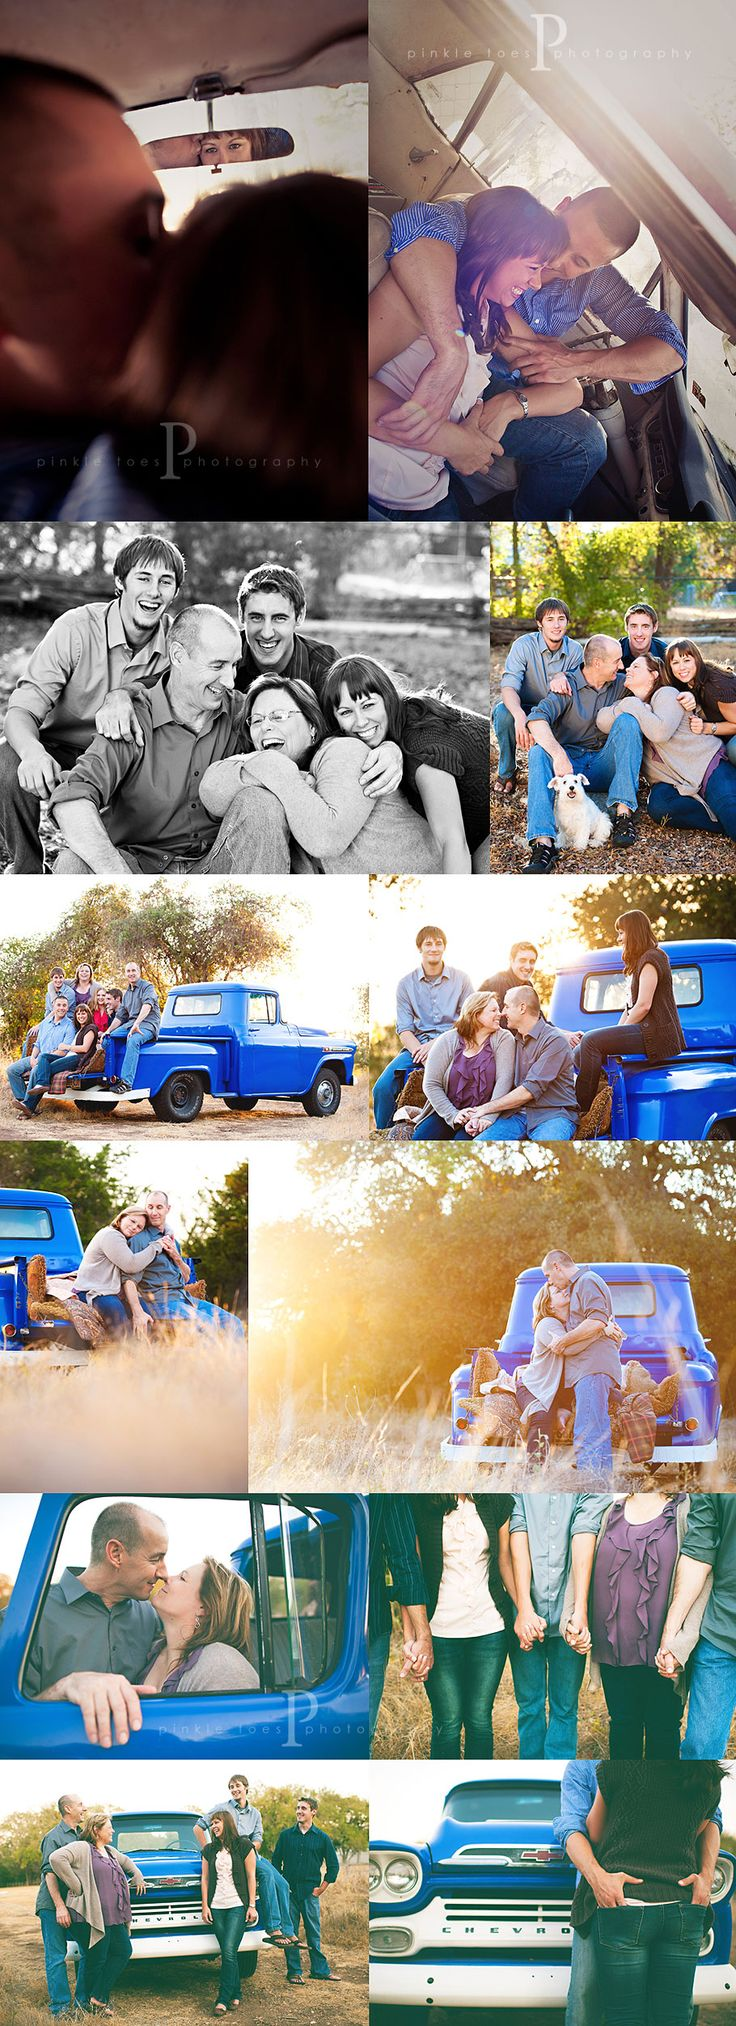 I want a country-like session with a vintage truck like this for our family someday. Such love. Michele from Pinkletoes Photography.